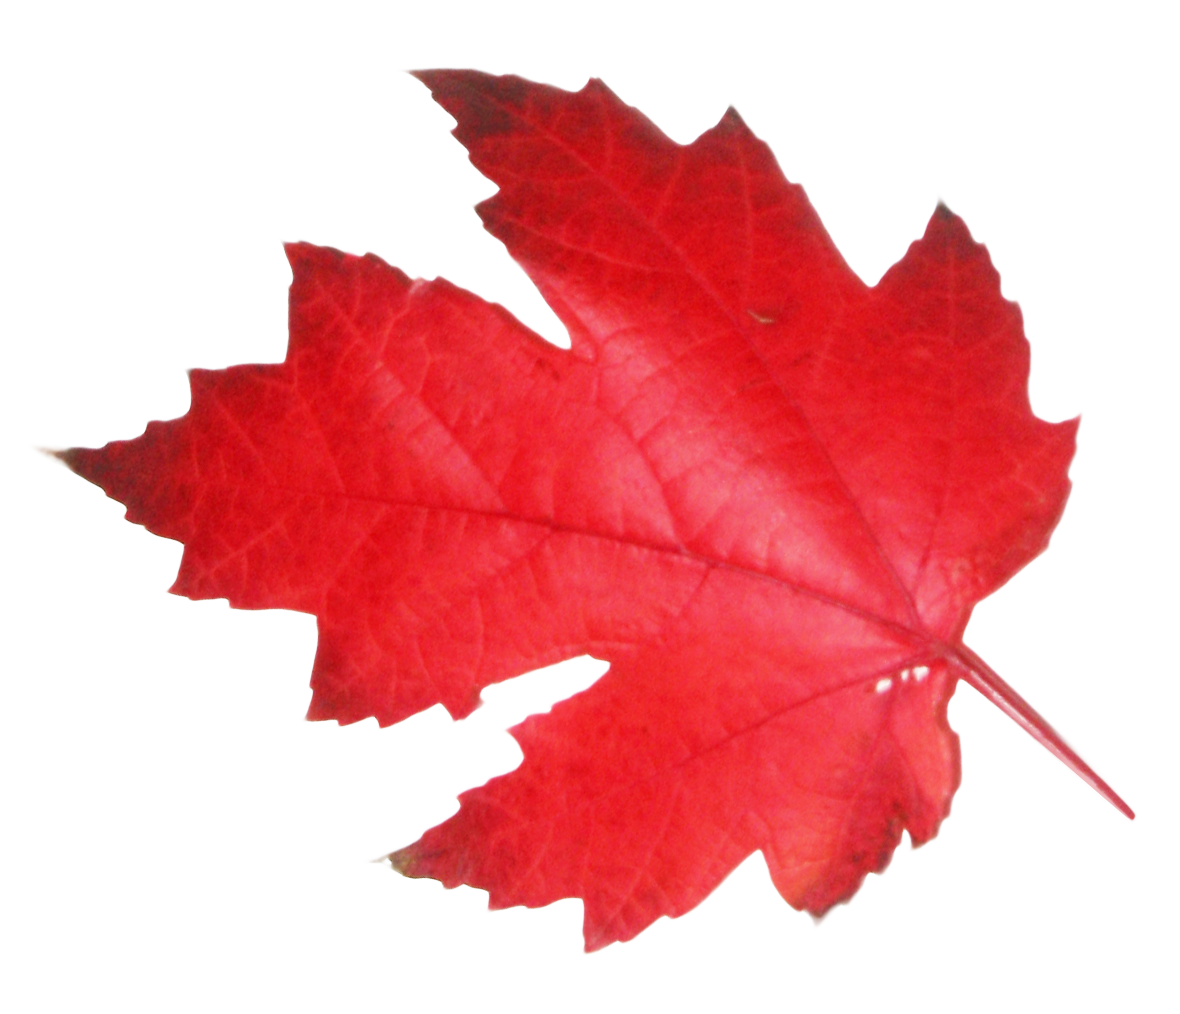 red Leaf PNG Image - PurePNG | Free transparent CC0 PNG ...